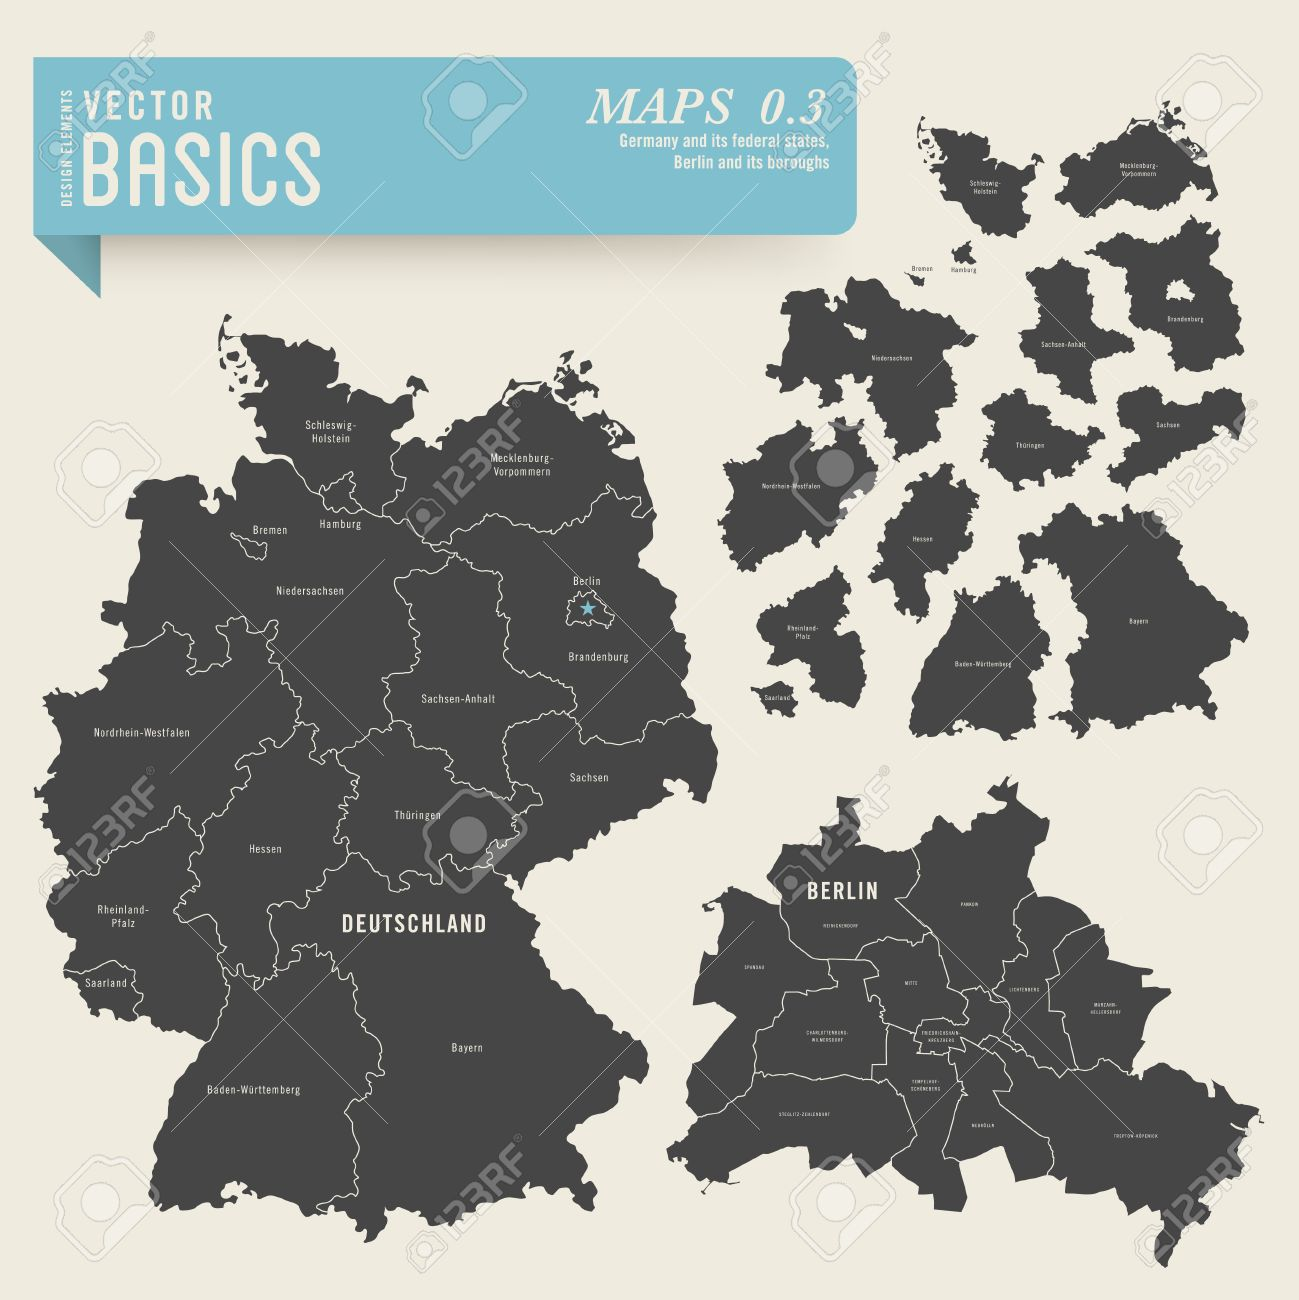 Maps Of Germany With Its Federal States And Berlin With Its - Germany map federal states